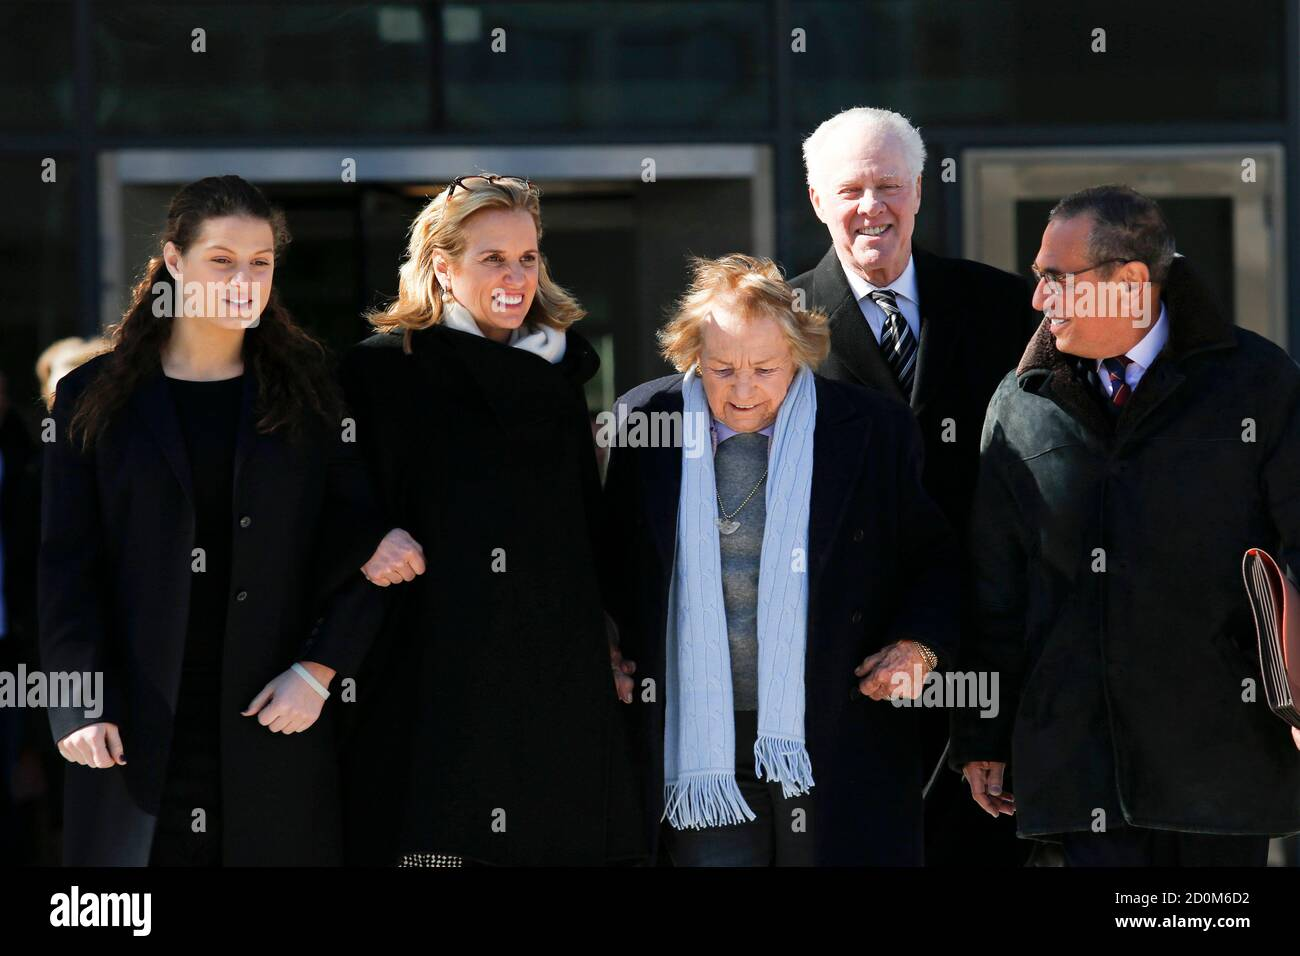 Kerry Kennedy And Ethel Kennedy High Resolution Stock Photography And Images Alamy